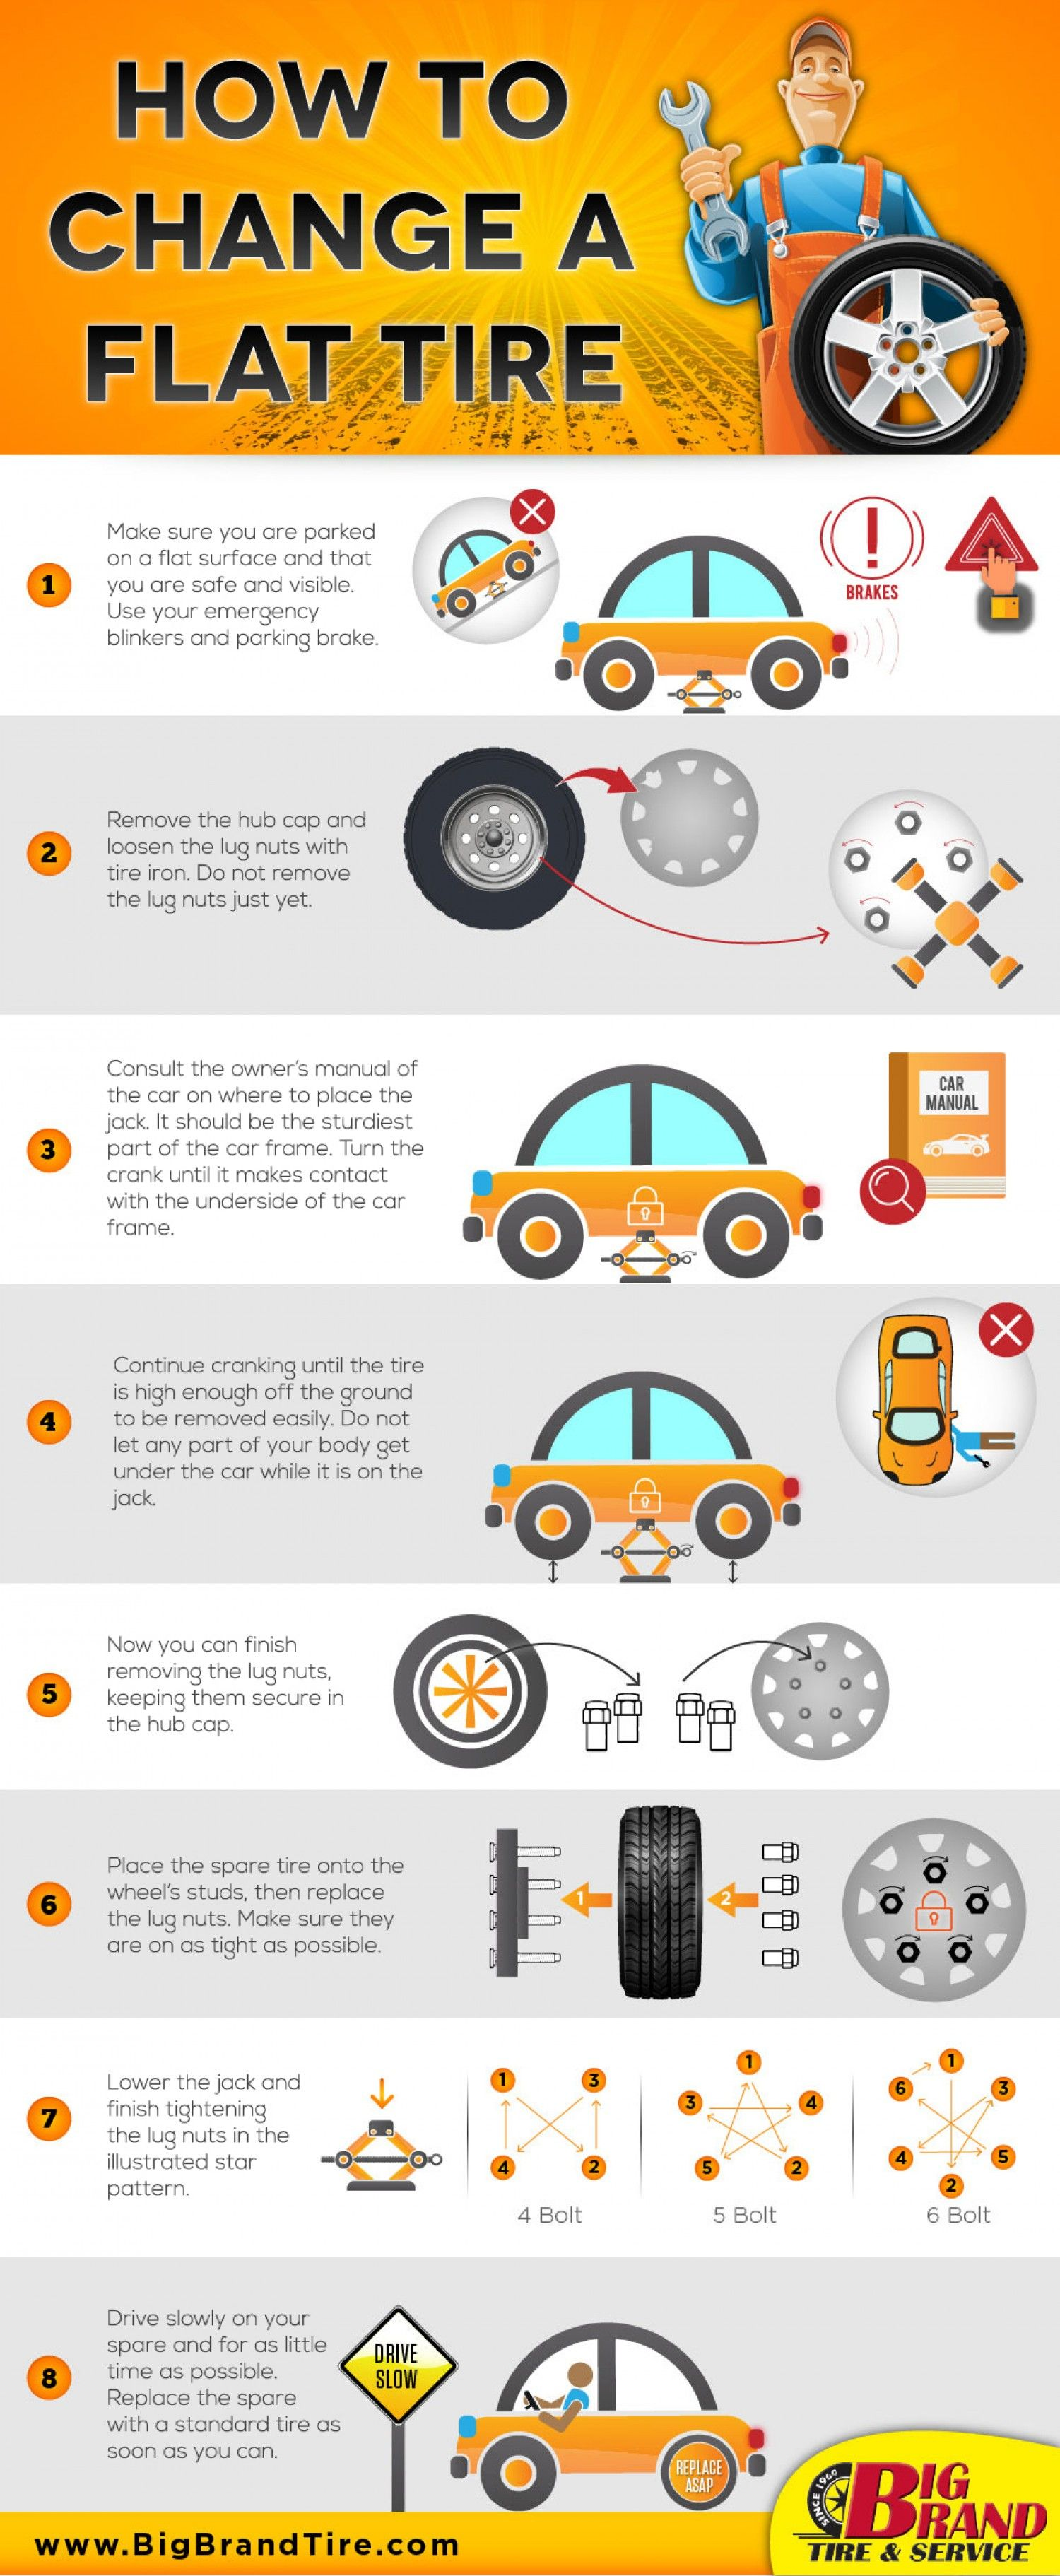 how to change a flat tire infographic traveling pinterest more infographic cars and life. Black Bedroom Furniture Sets. Home Design Ideas